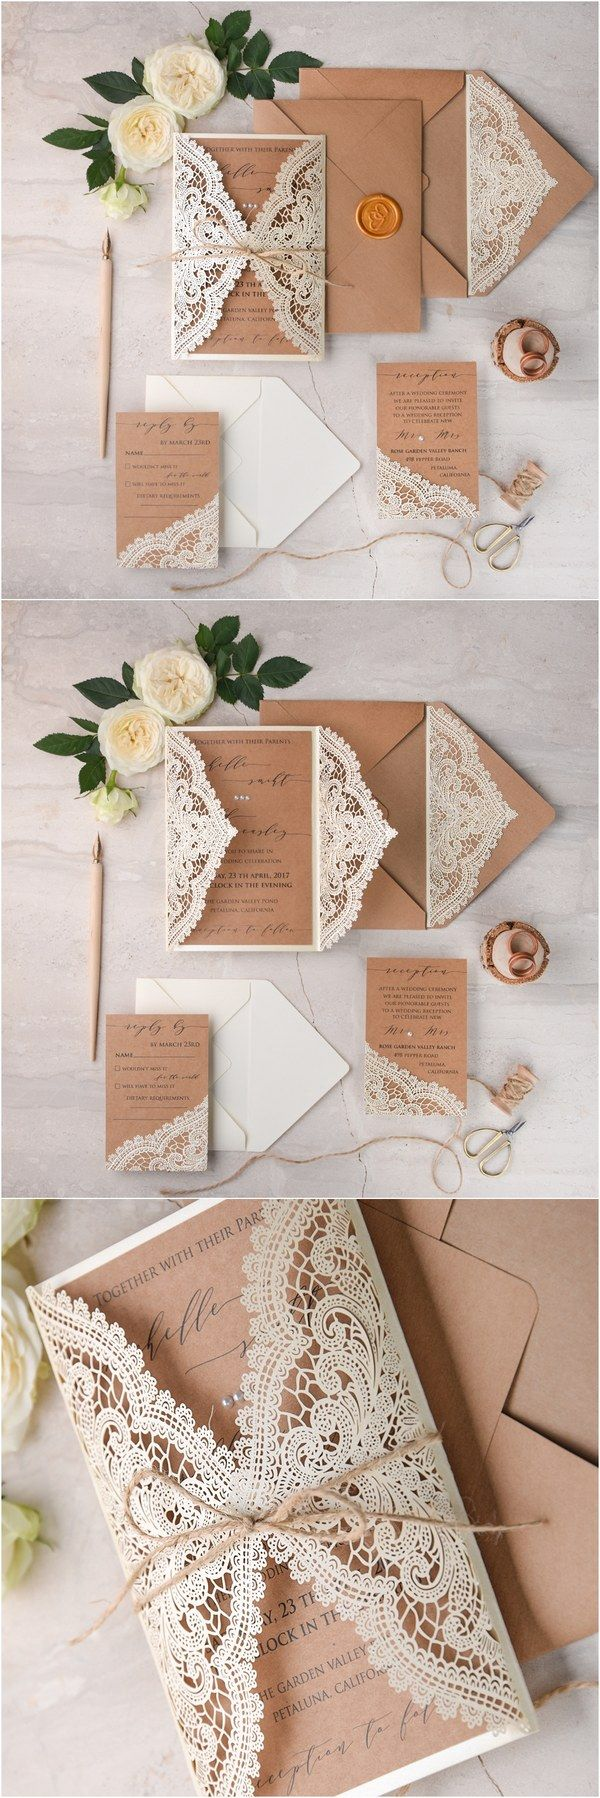 Ivory kraft paper laser cut lace rustic wedding invitations 02lCNz